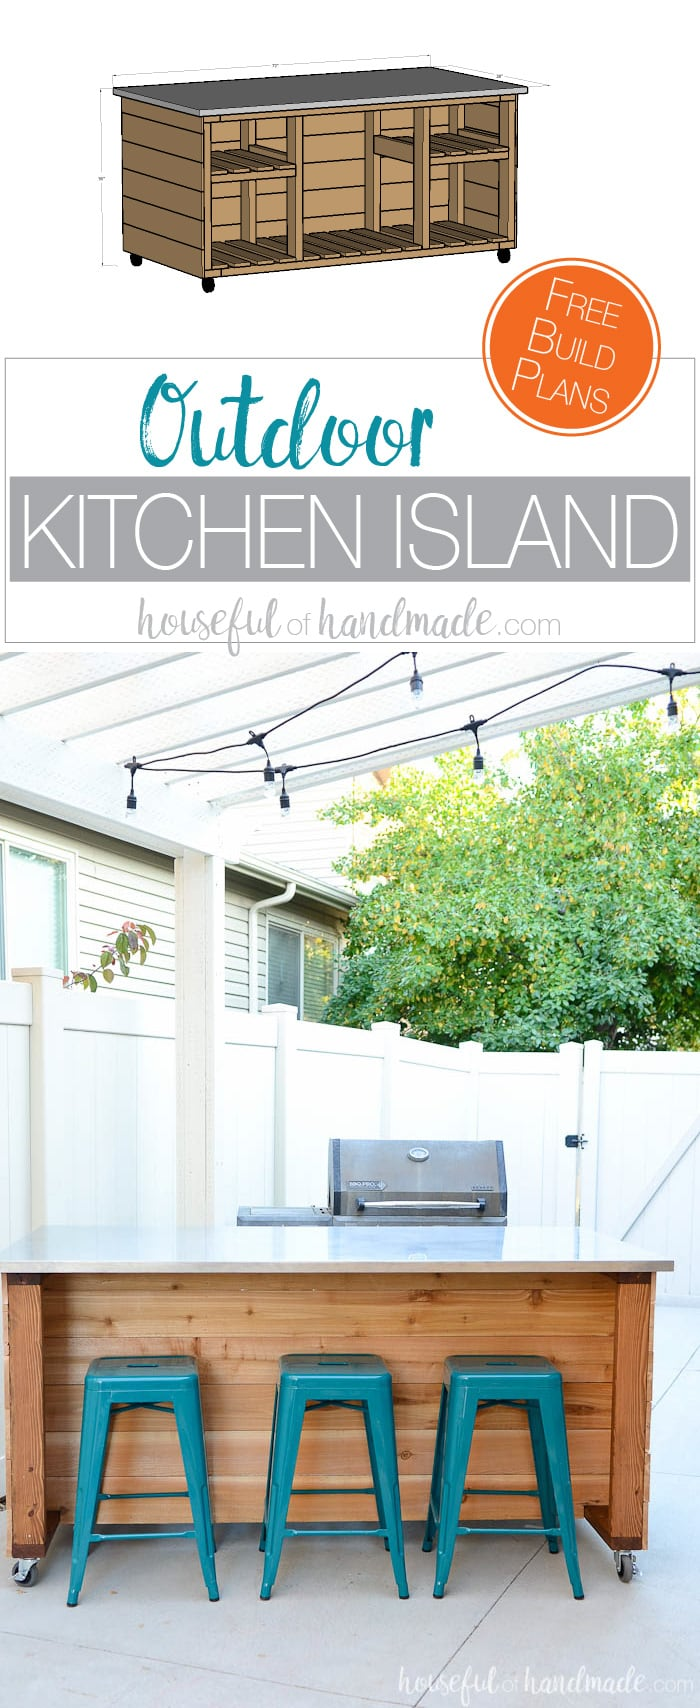 Outdoor Kitchen Island Build Plans - a Houseful of Handmade